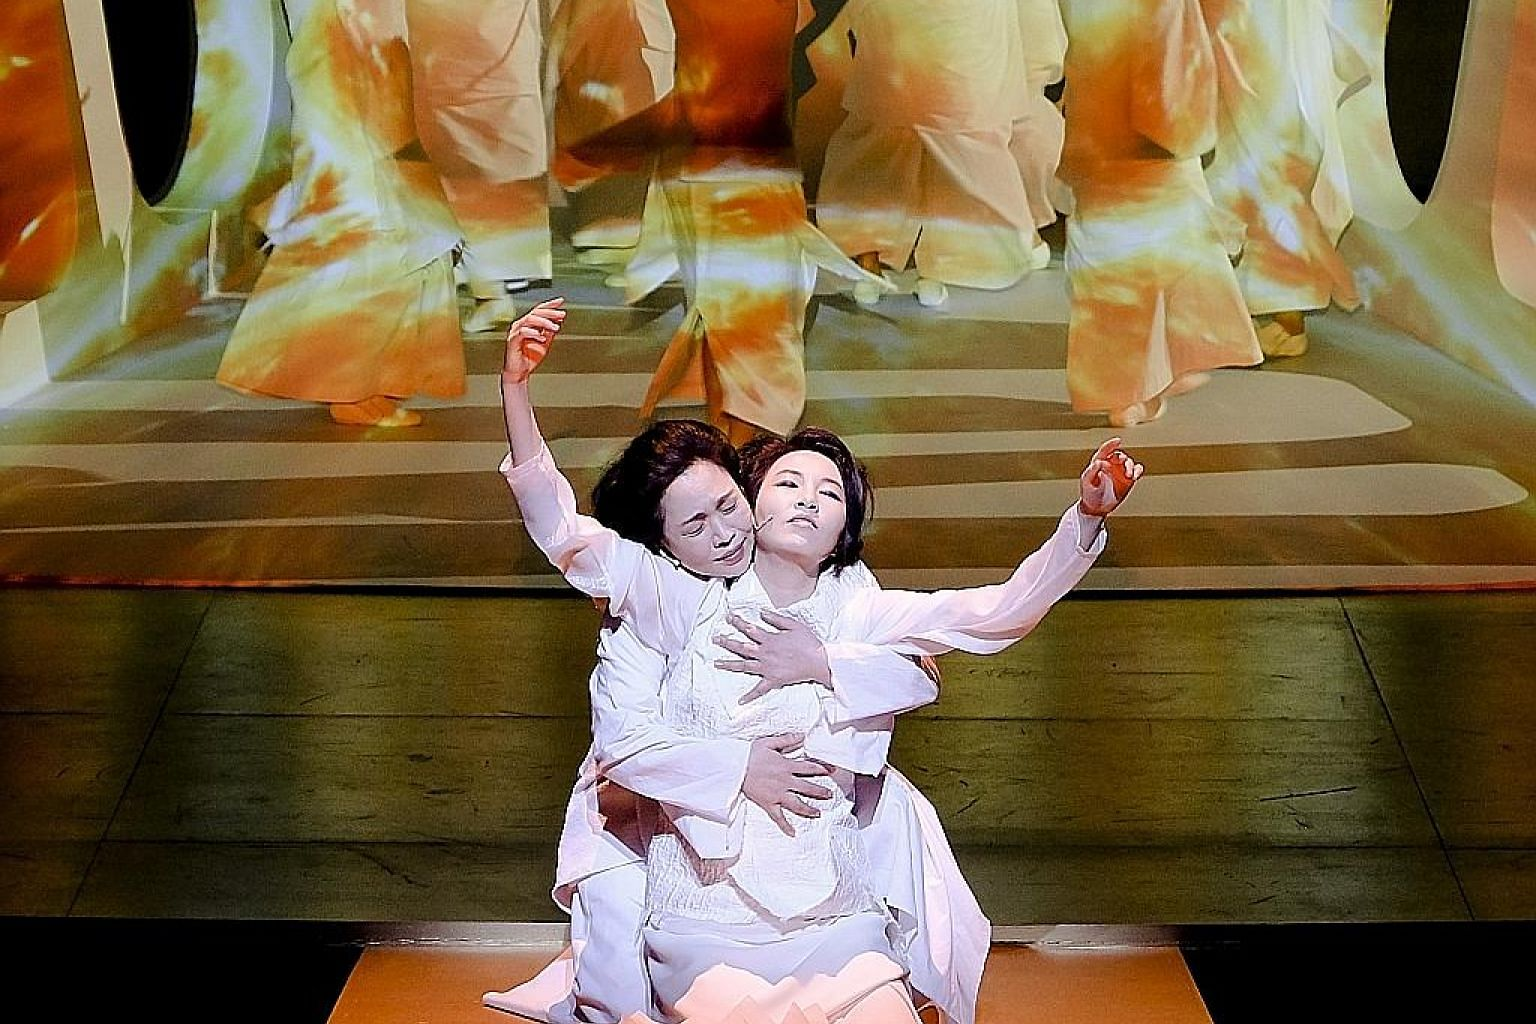 Yi So Yeon (front) as Cassandra, embraced by Kim Kum Mi, who plays her mother, Hecuba, in Trojan Women.